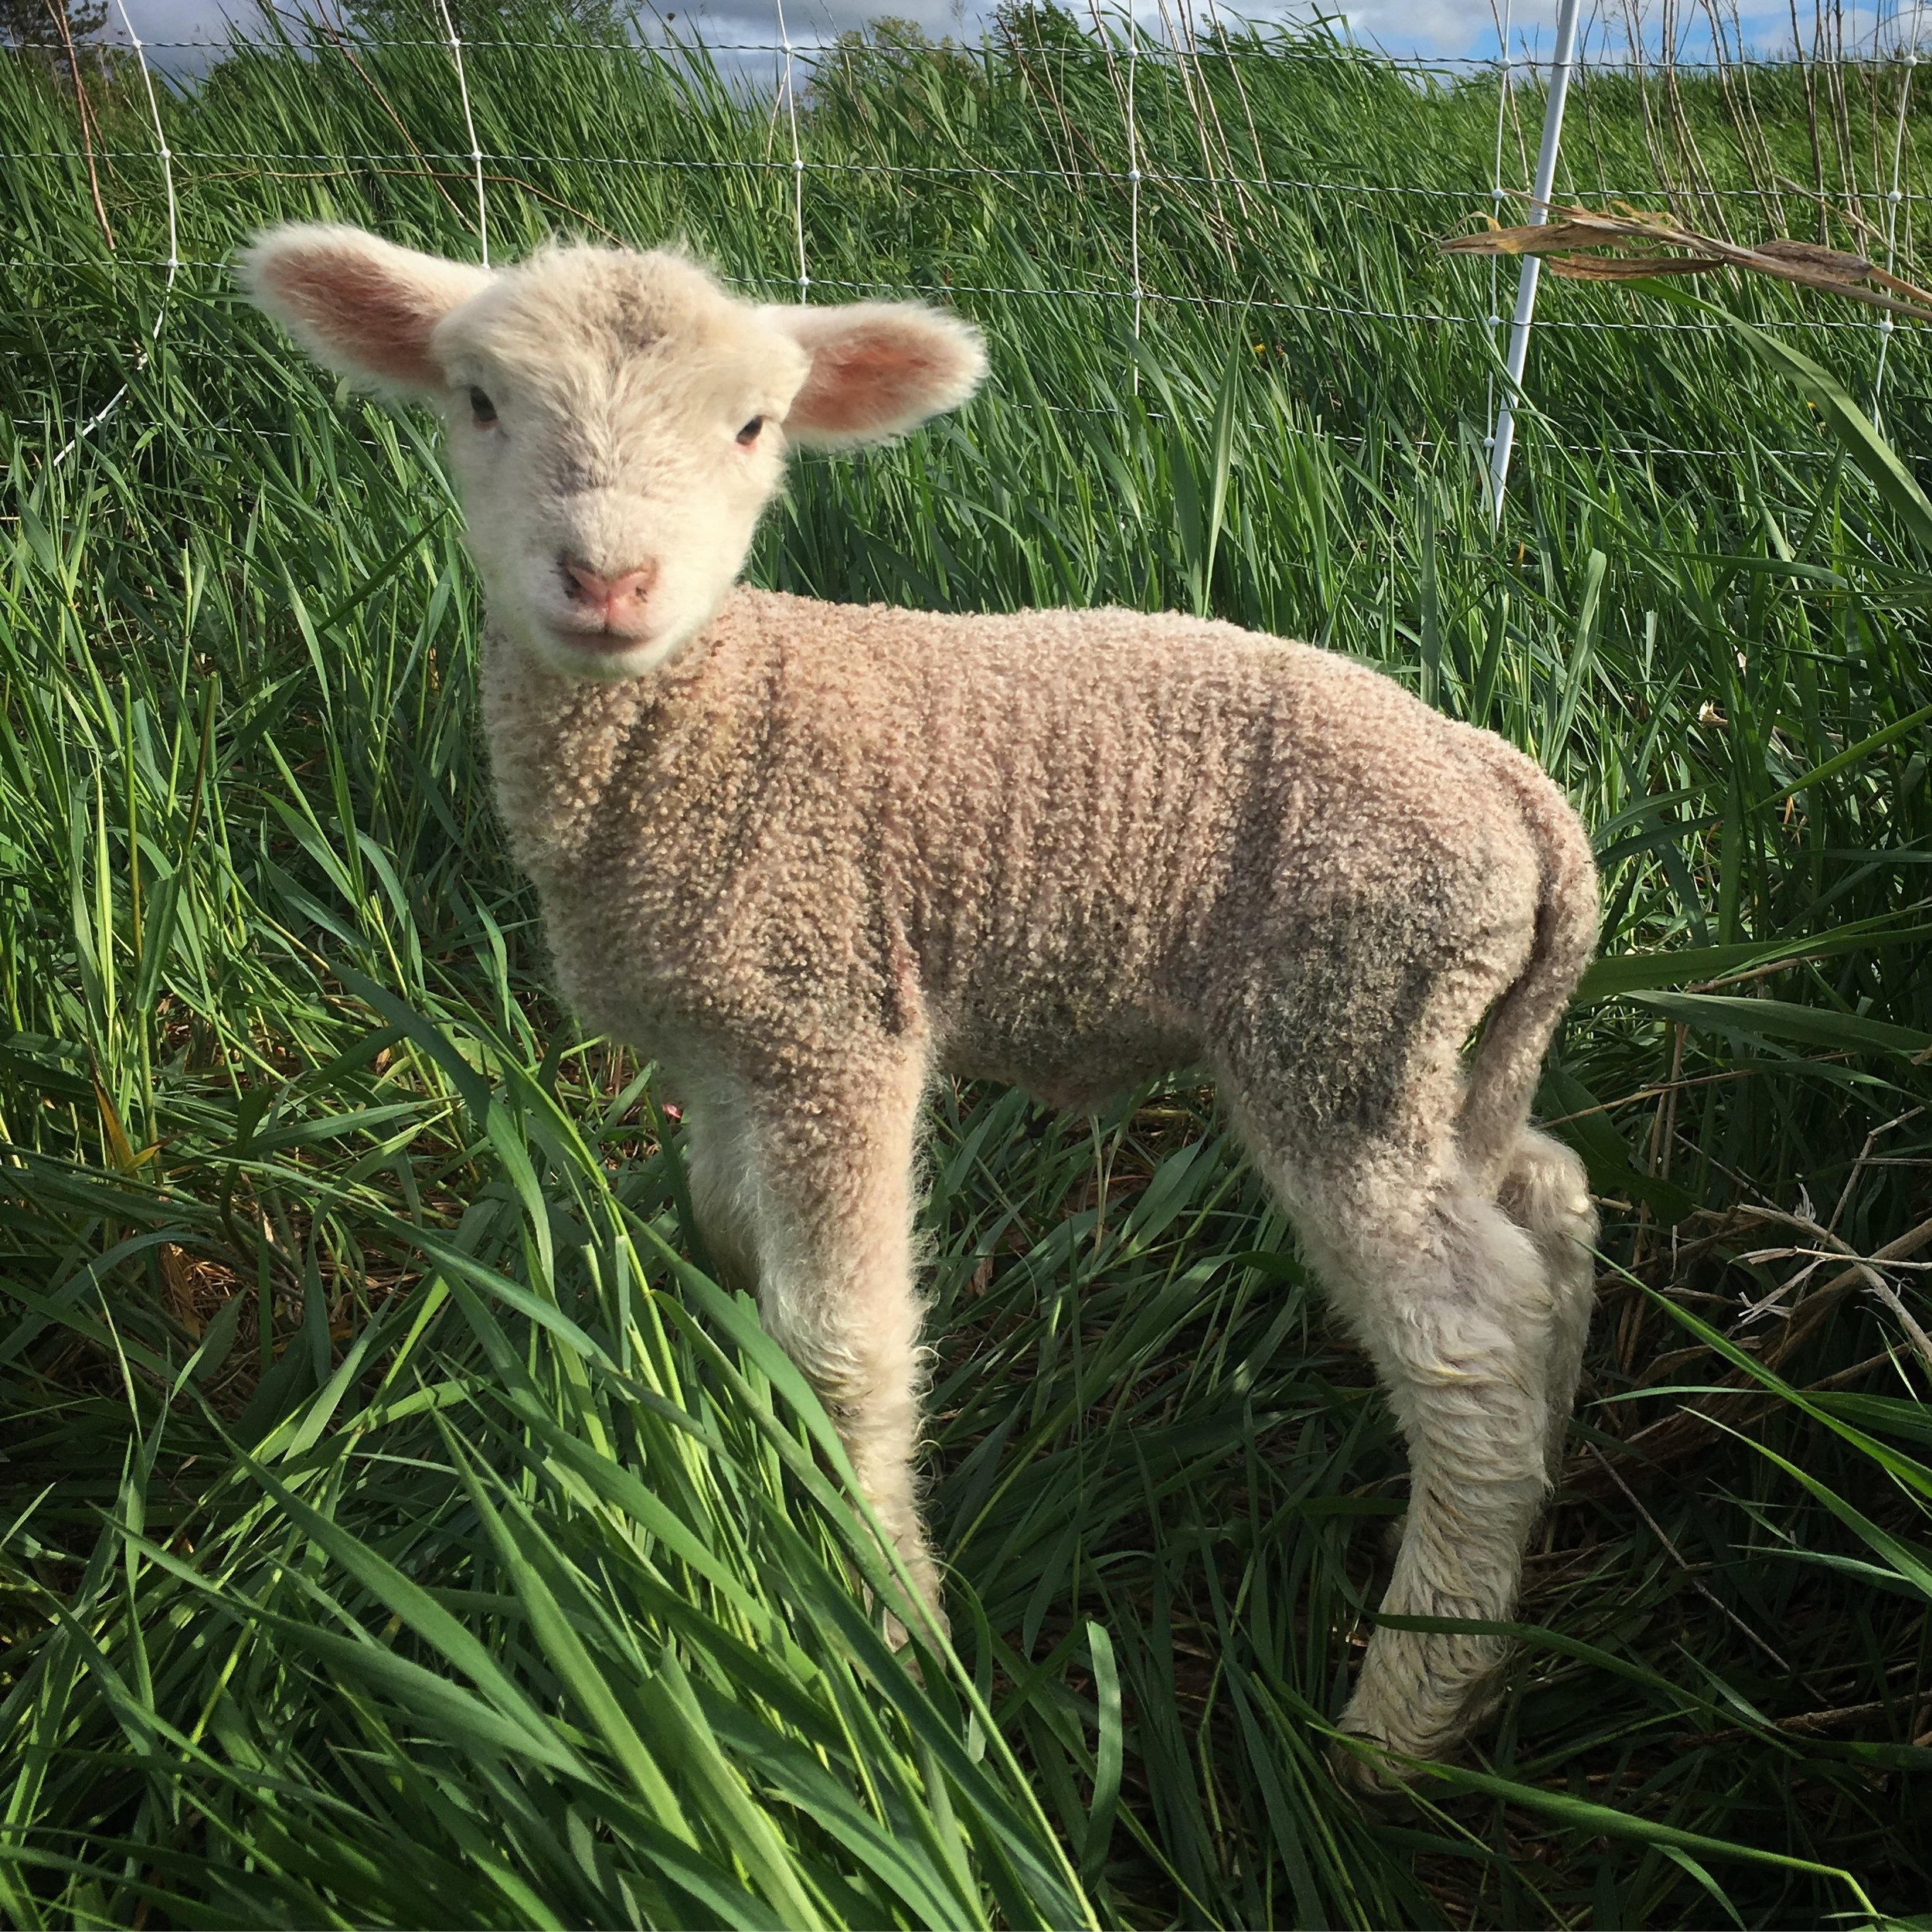 sheep - little lamb.JPG